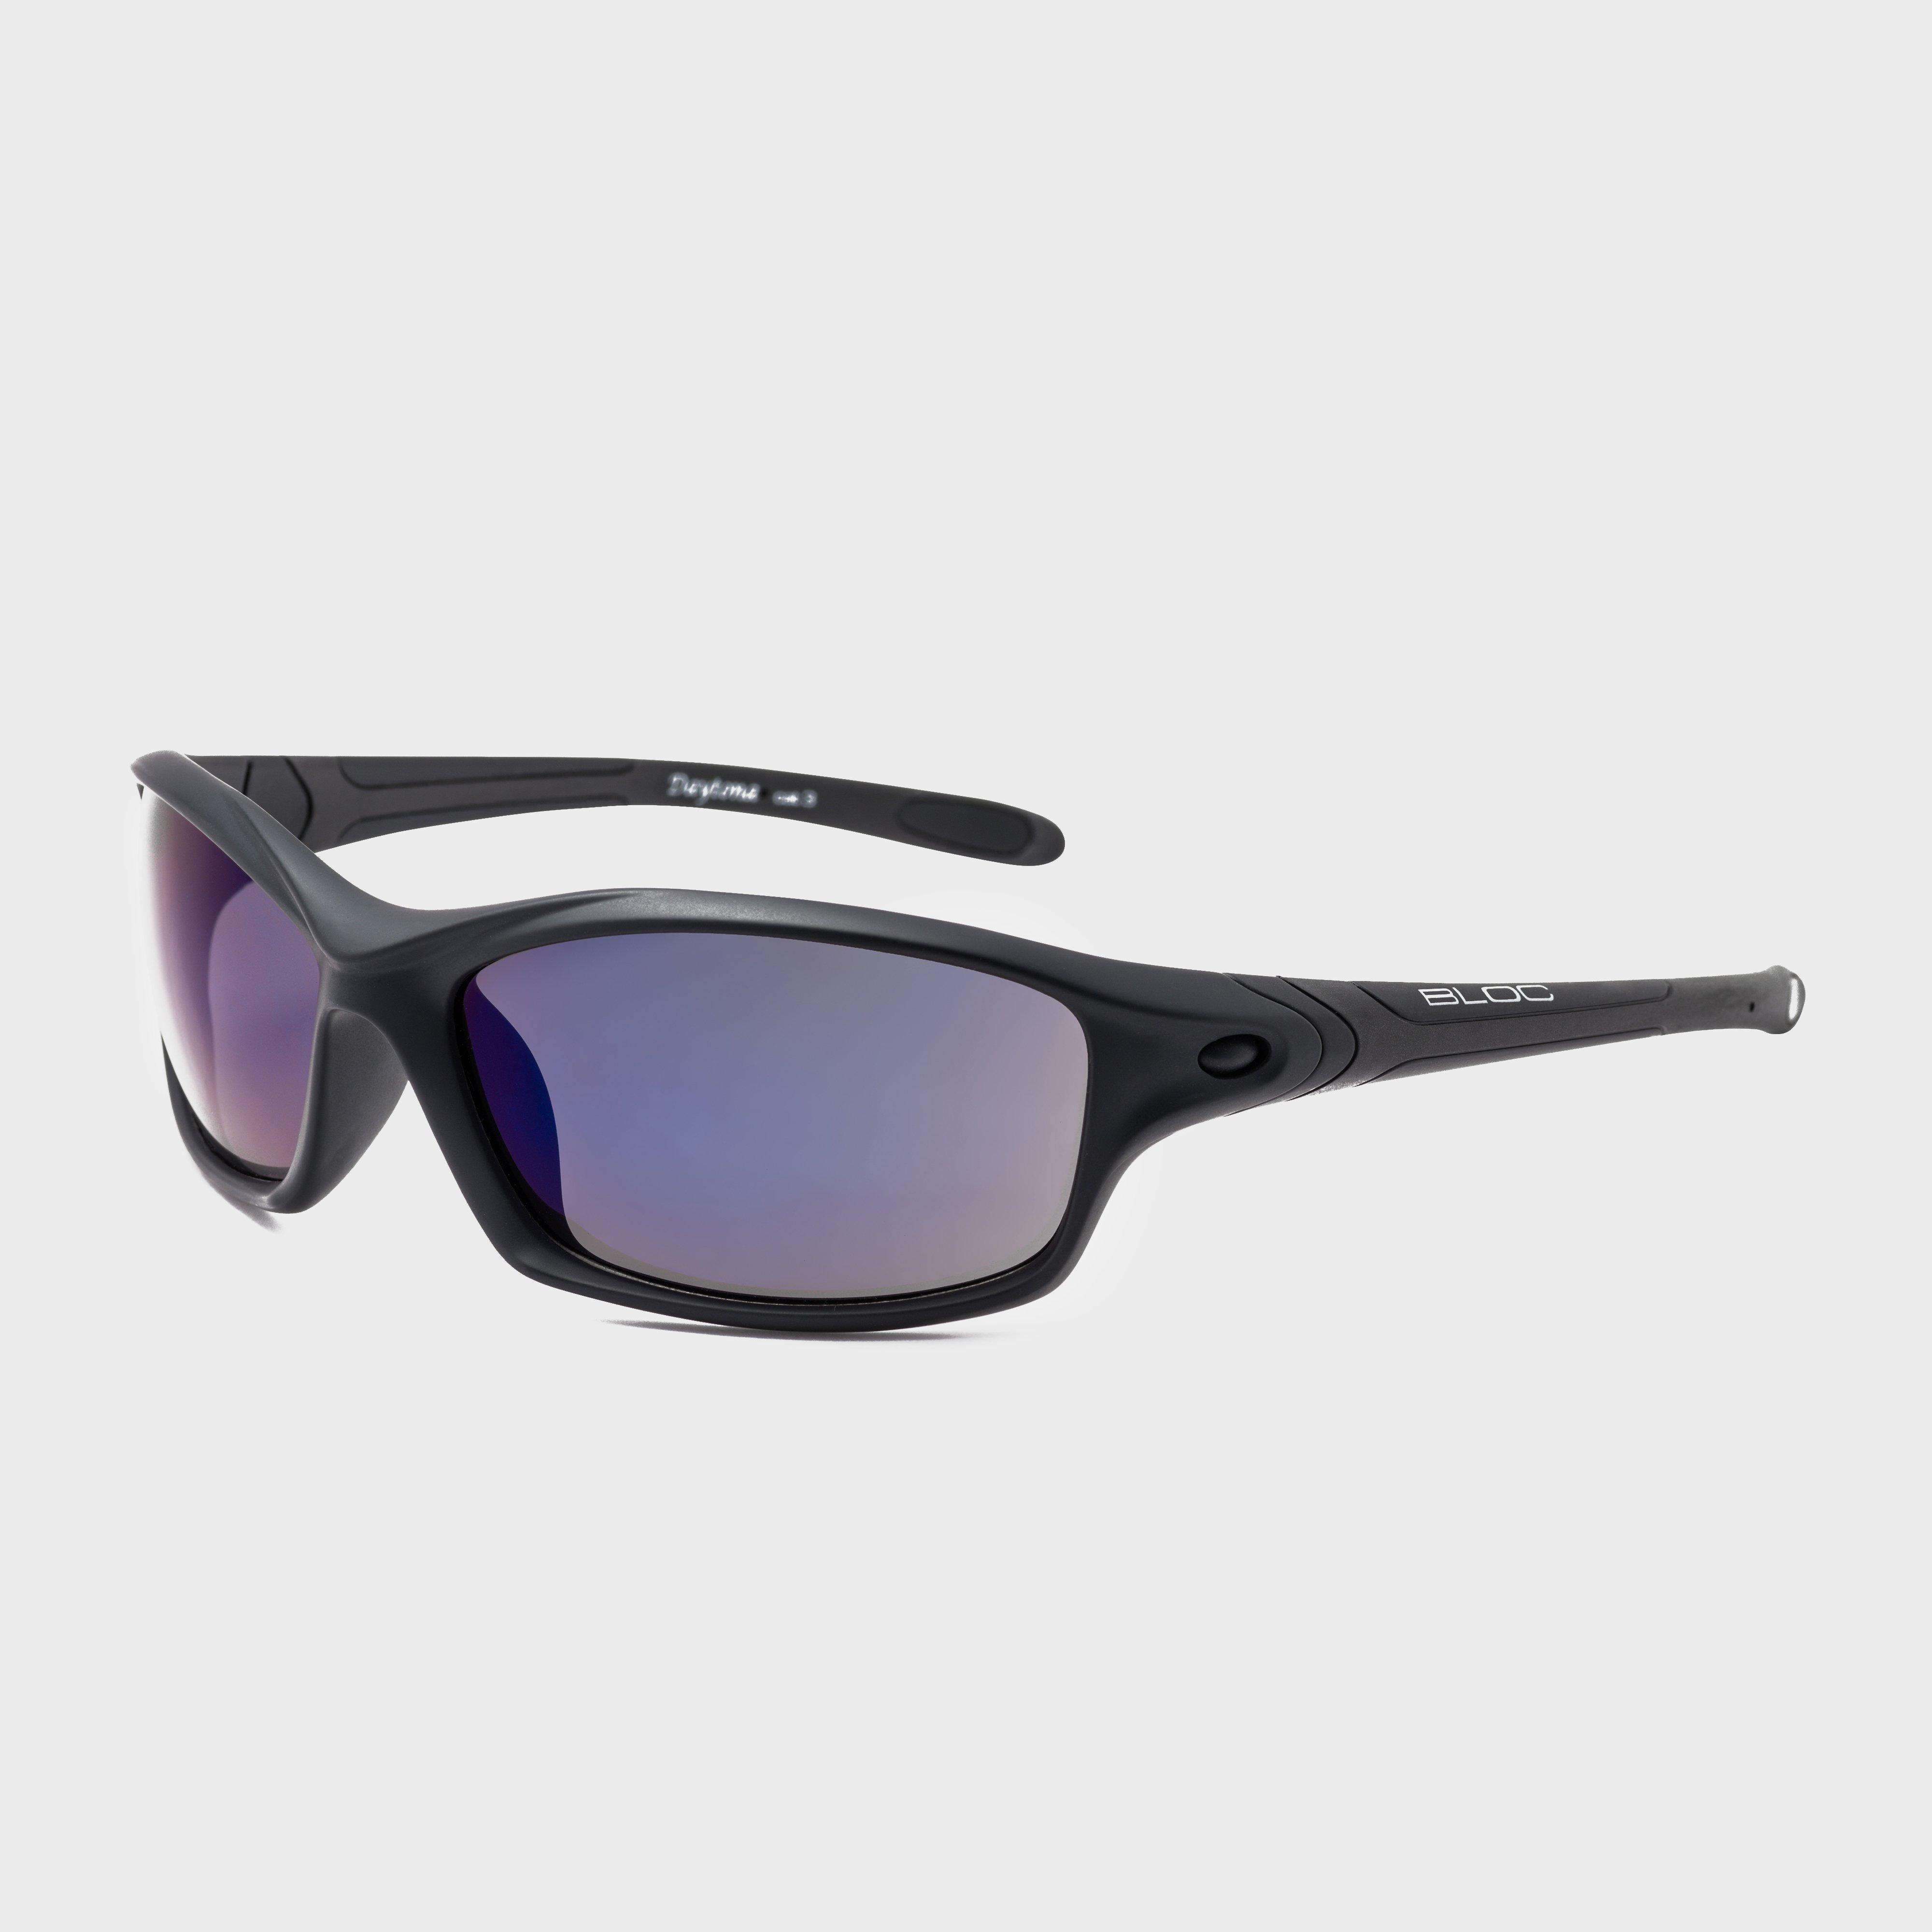 Bloc Daytona XMB60 Sunglasses, Black